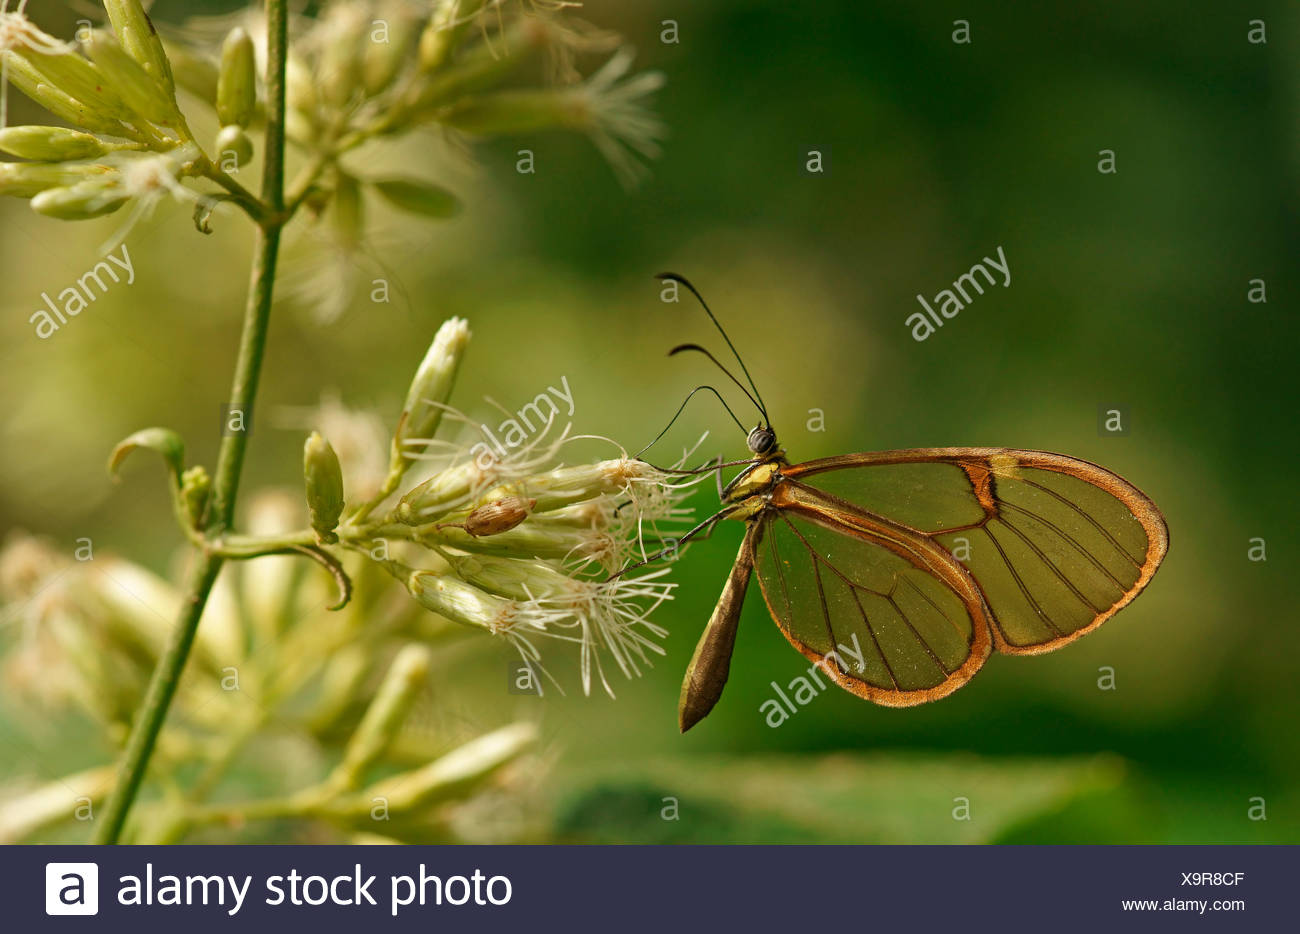 Clearwing, Tropical butterfly (Hypoleria lavinia), Iguazú National Park, Paraná, Brazil - Stock Image